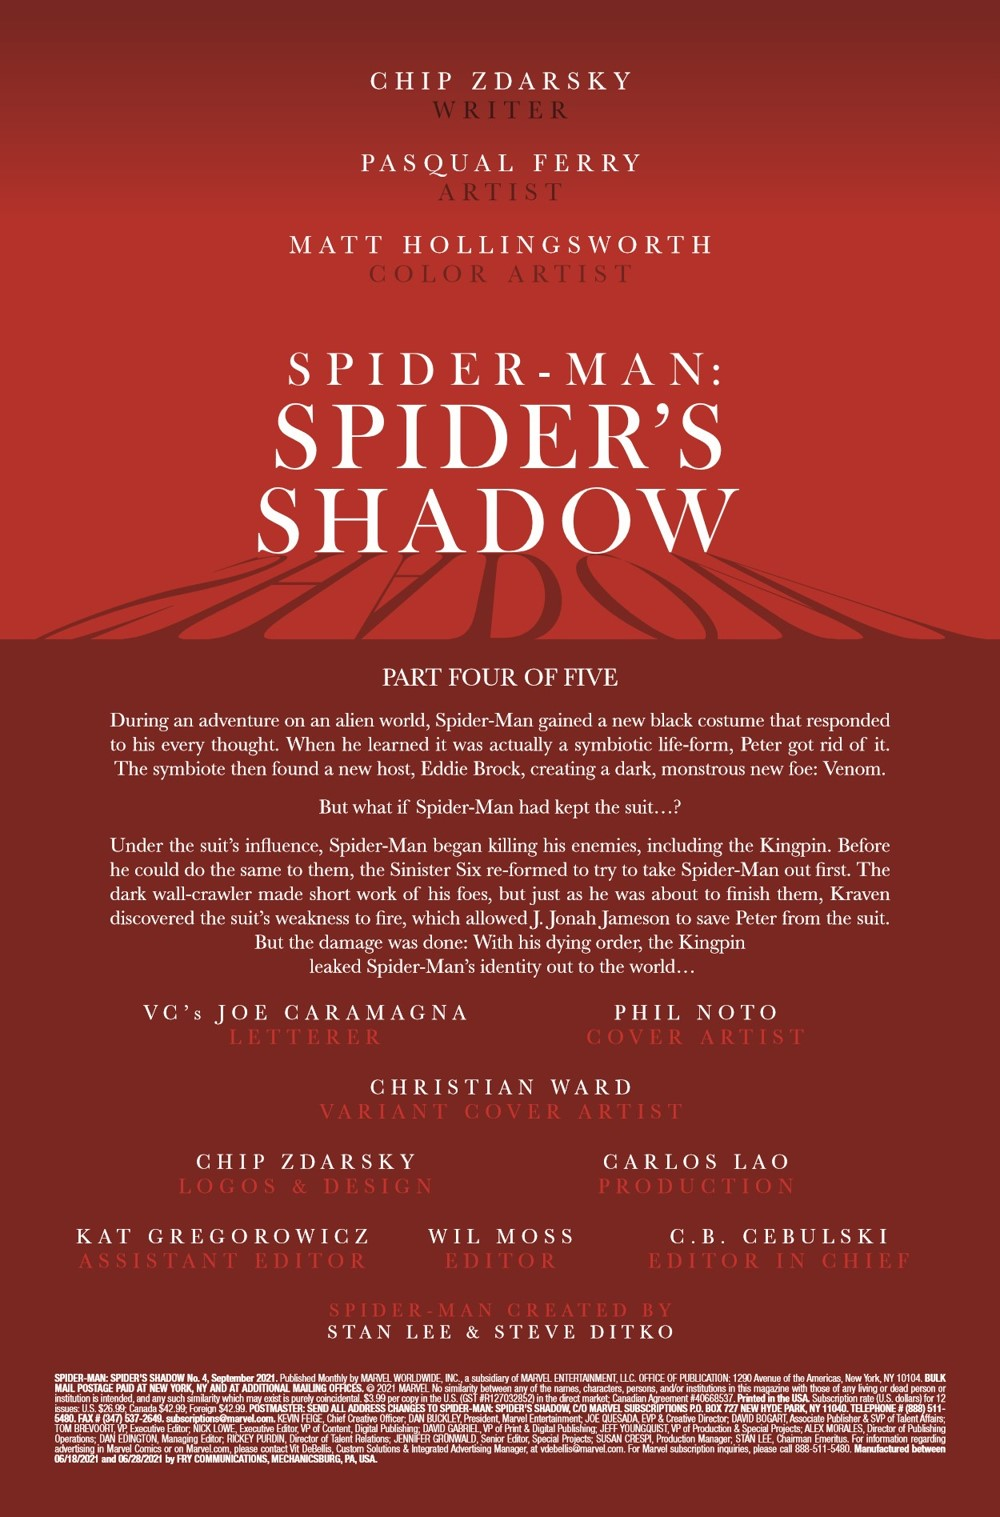 SMSPIDERSHADOW2021004_Preview-2 ComicList Previews: SPIDER-MAN SPIDER'S SHADOW #4 (OF 5)